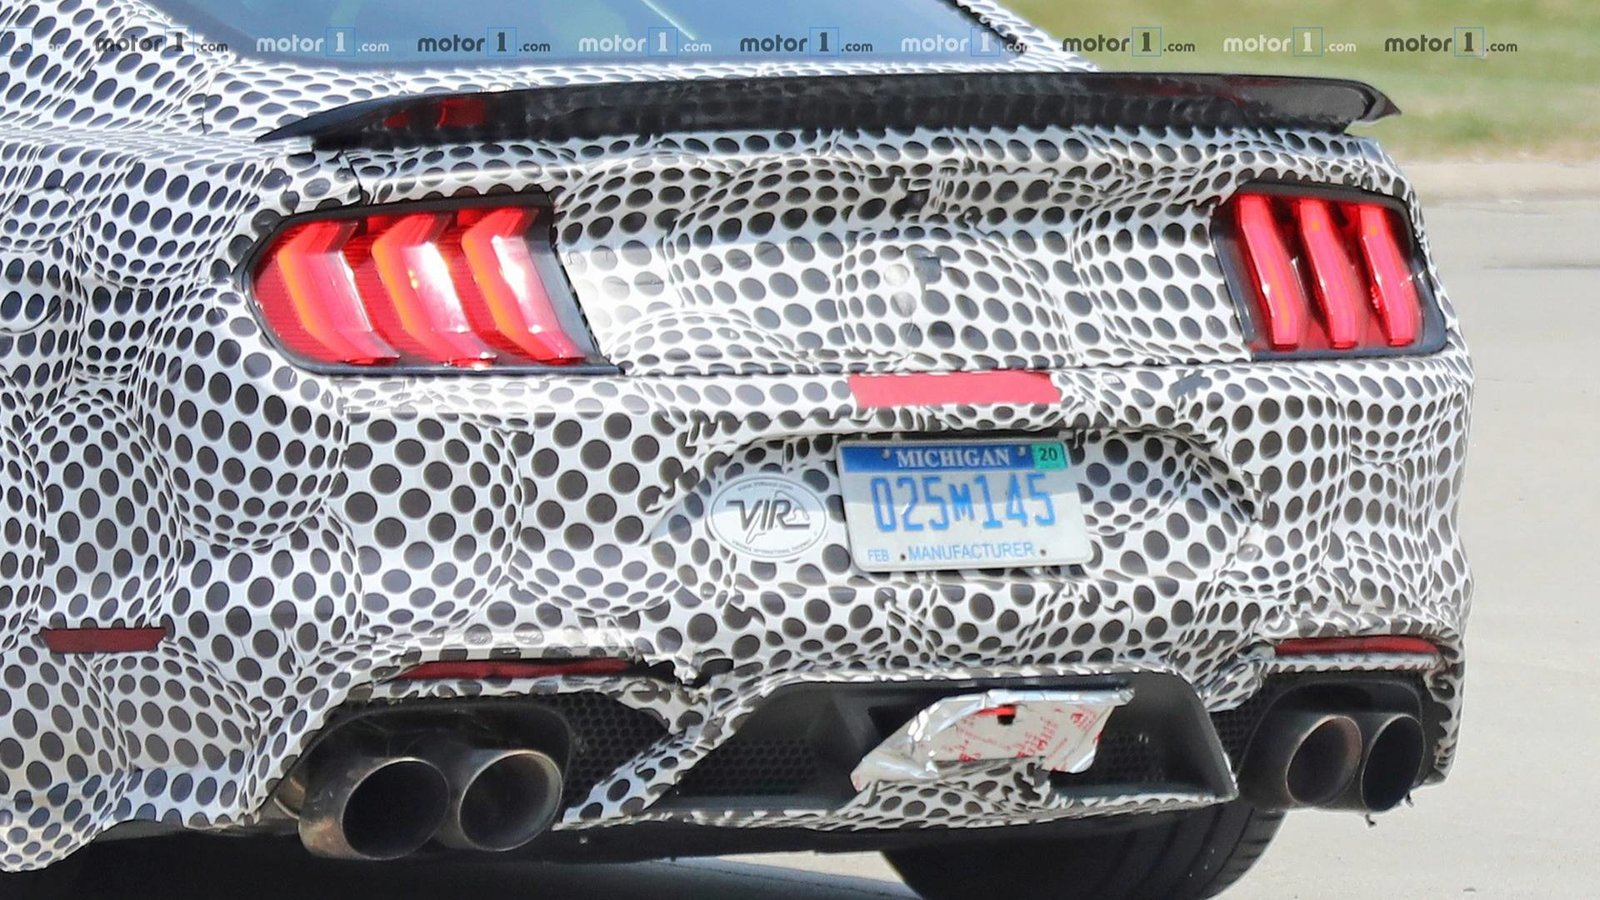 2019-ford-mustang-shelby-gt500-spy-photo (4).jpg